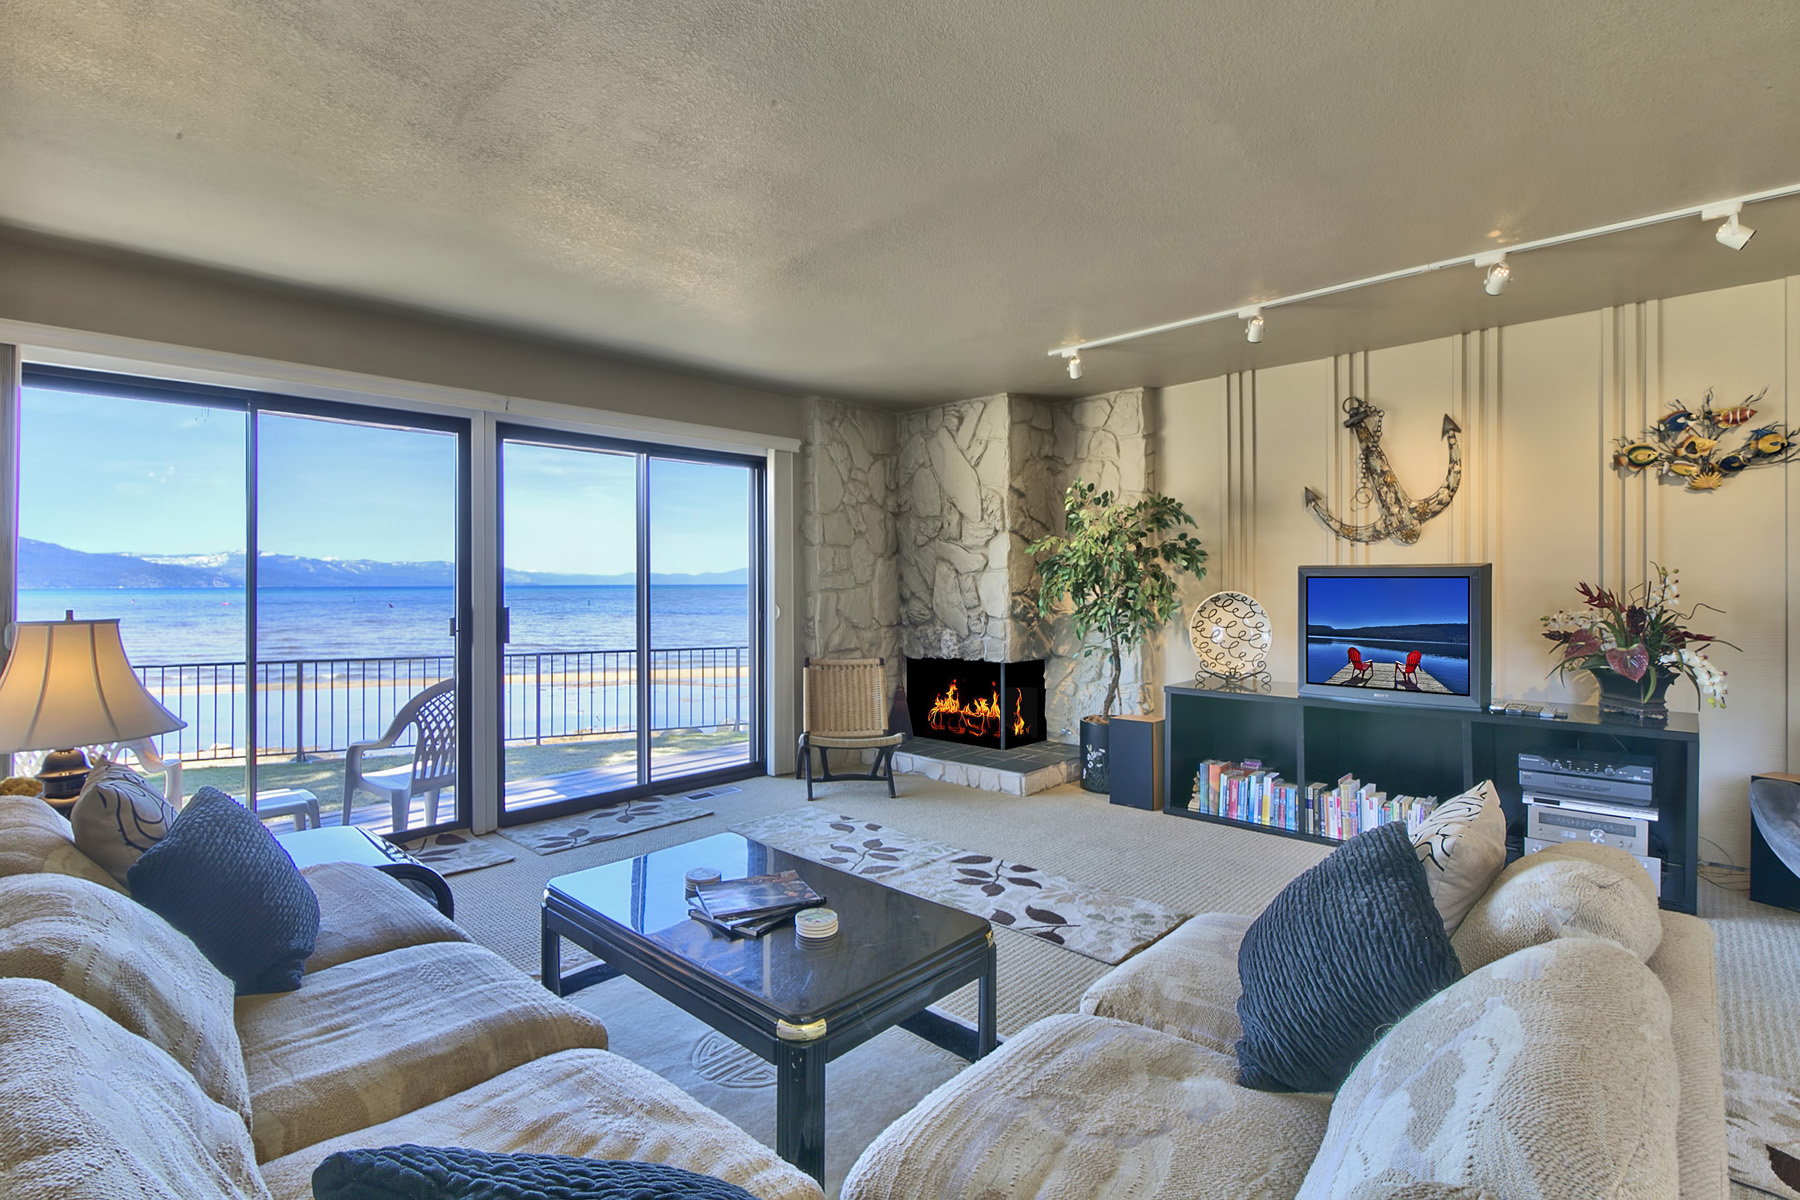 Condominium for Sale at 336 Ala Wai Blvd #271 South Lake Tahoe, California, 96150 Lake Tahoe, United States